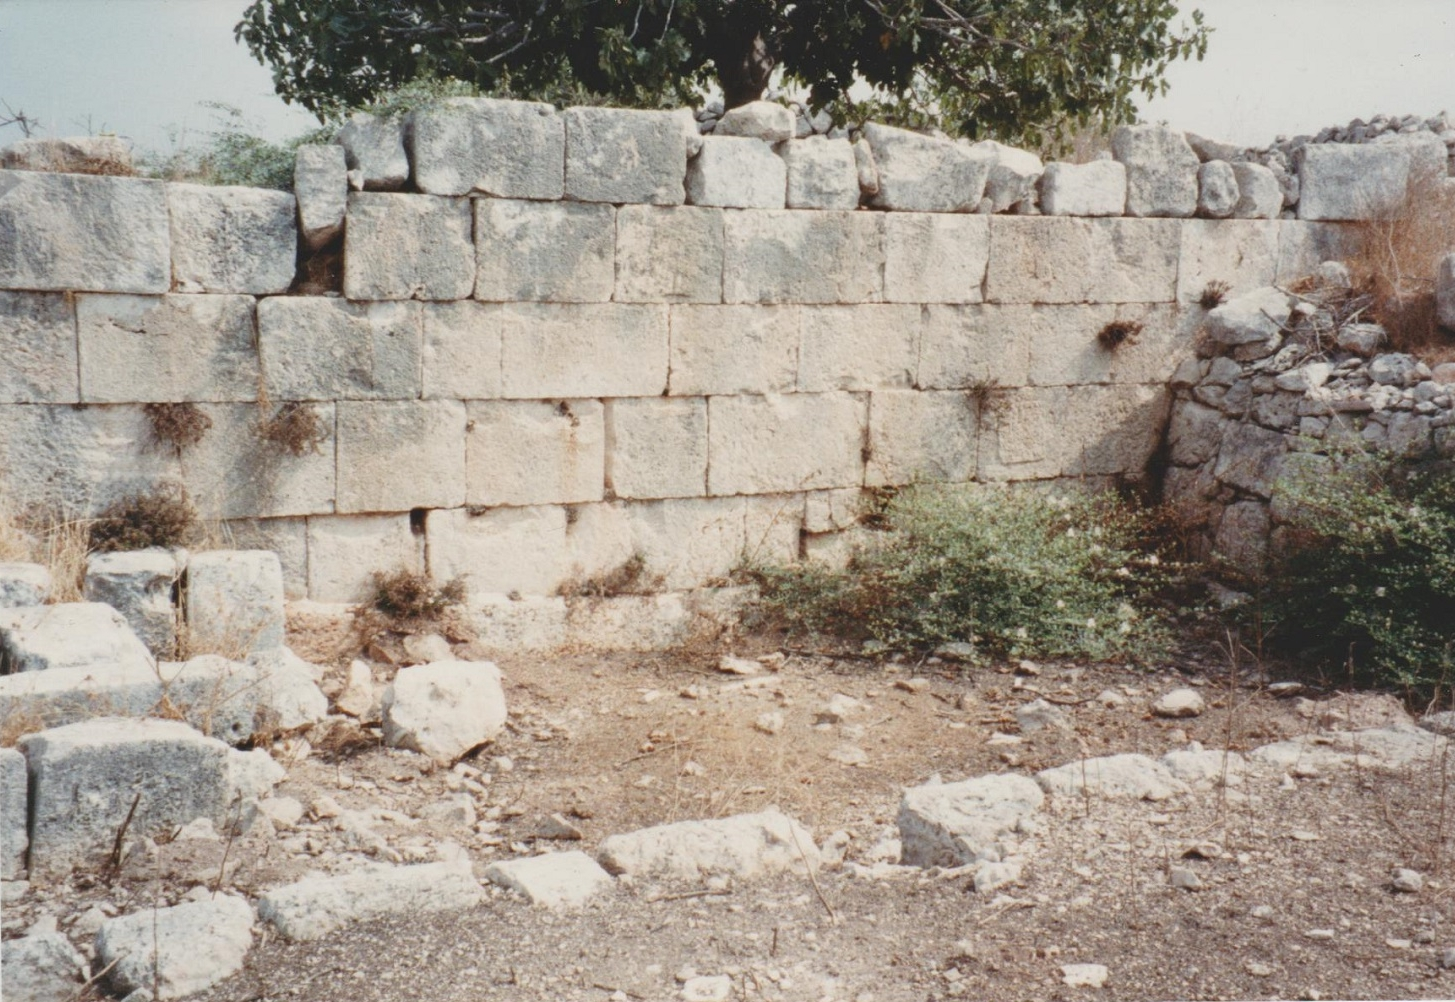 Deir Samaan, summer 1990. There is evidence of the original Roman construction, Byzantine modification and re-use, and modern uncovering of wall lines (presumably for the purposes of determining a basic plan of the site) prior to my visit of 1990. Credit: Eleanor Scott.